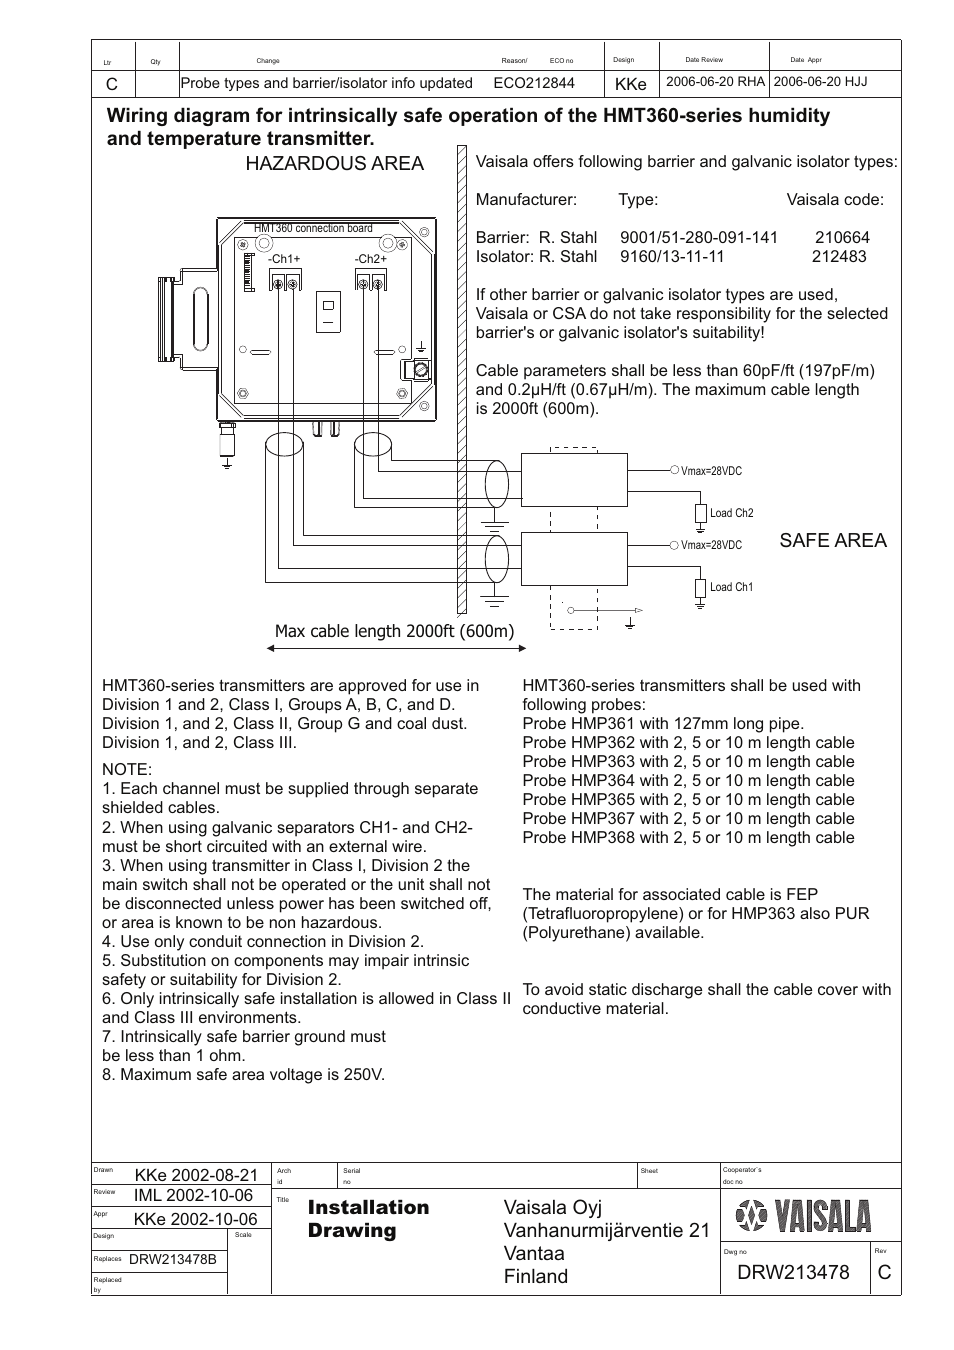 Drw213478 | Vaisala HMT360 User Manual | Page 57 / 63 on